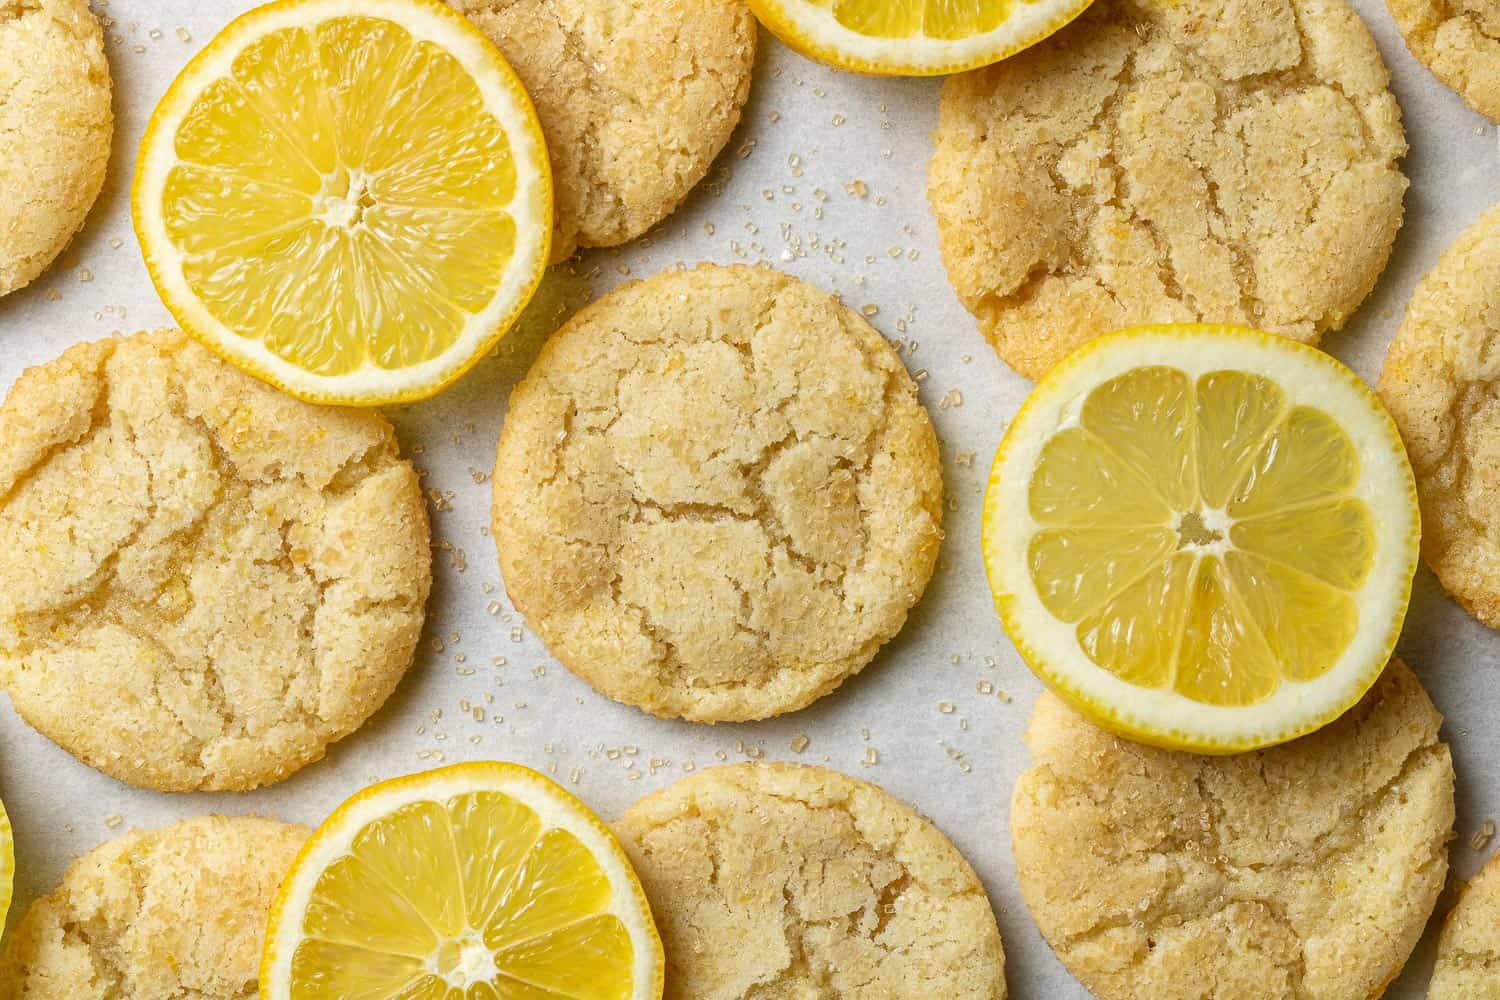 Close up of lemon sugar cookie with crinkled top, by lemon slices.